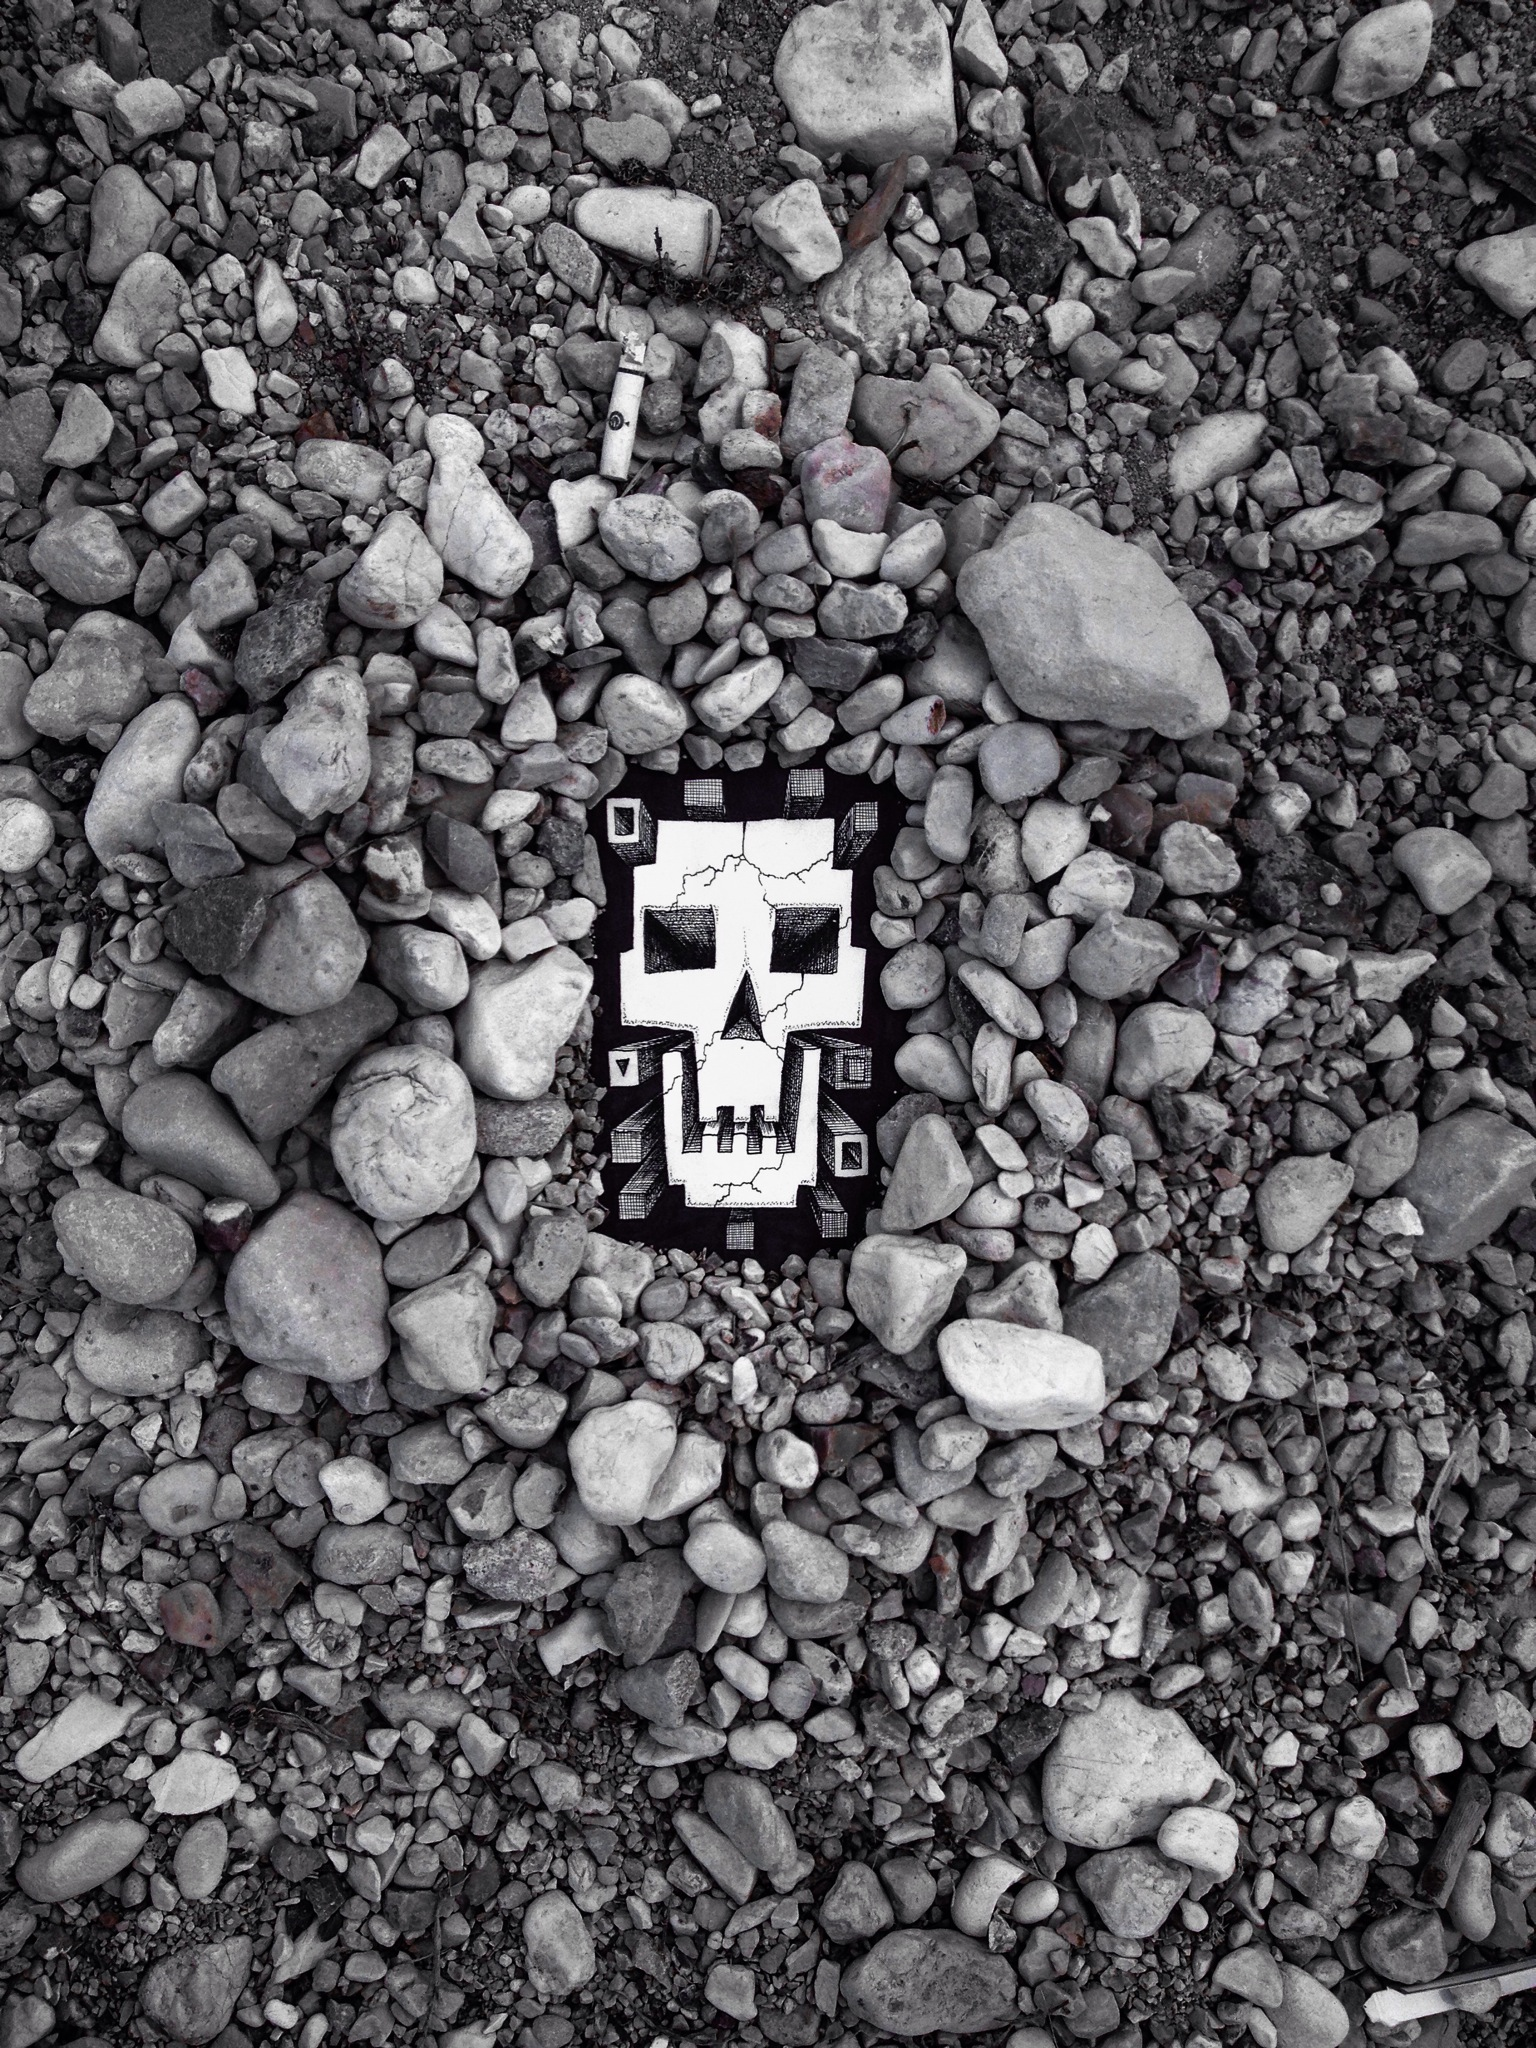 Skull Temple - Pens and Pebbles  - Art by Micke Nikander